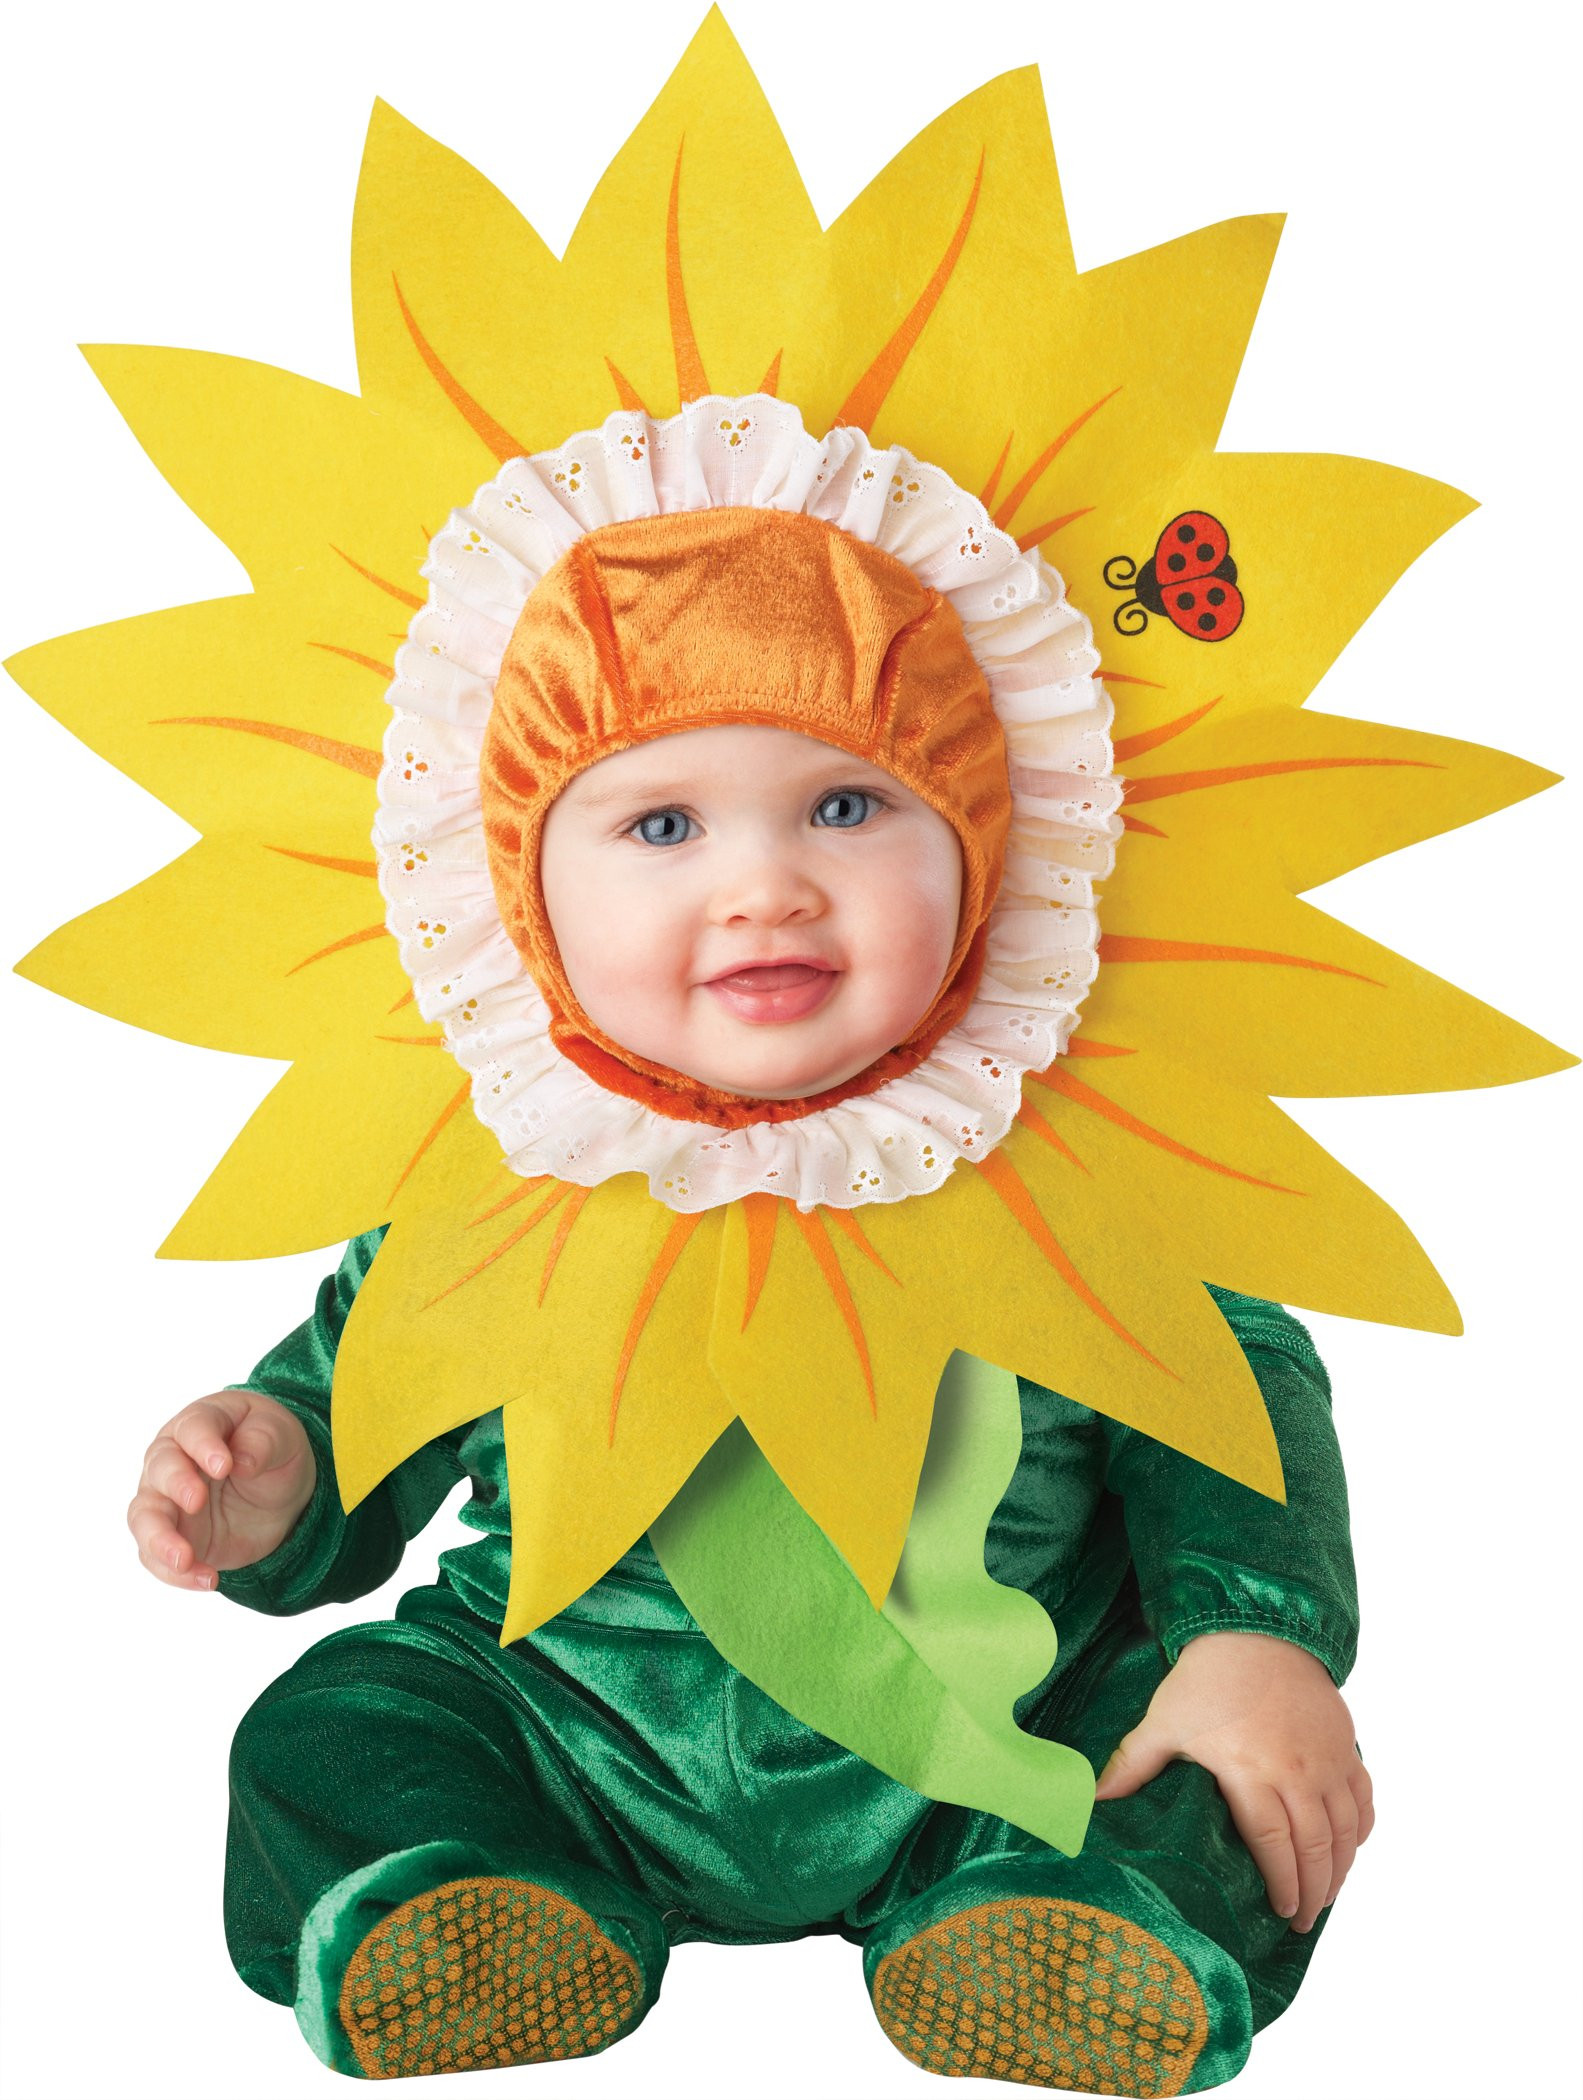 Baby Flower Halloween Costumes  Infant Baby Girls Sunflower Flower Halloween Costume